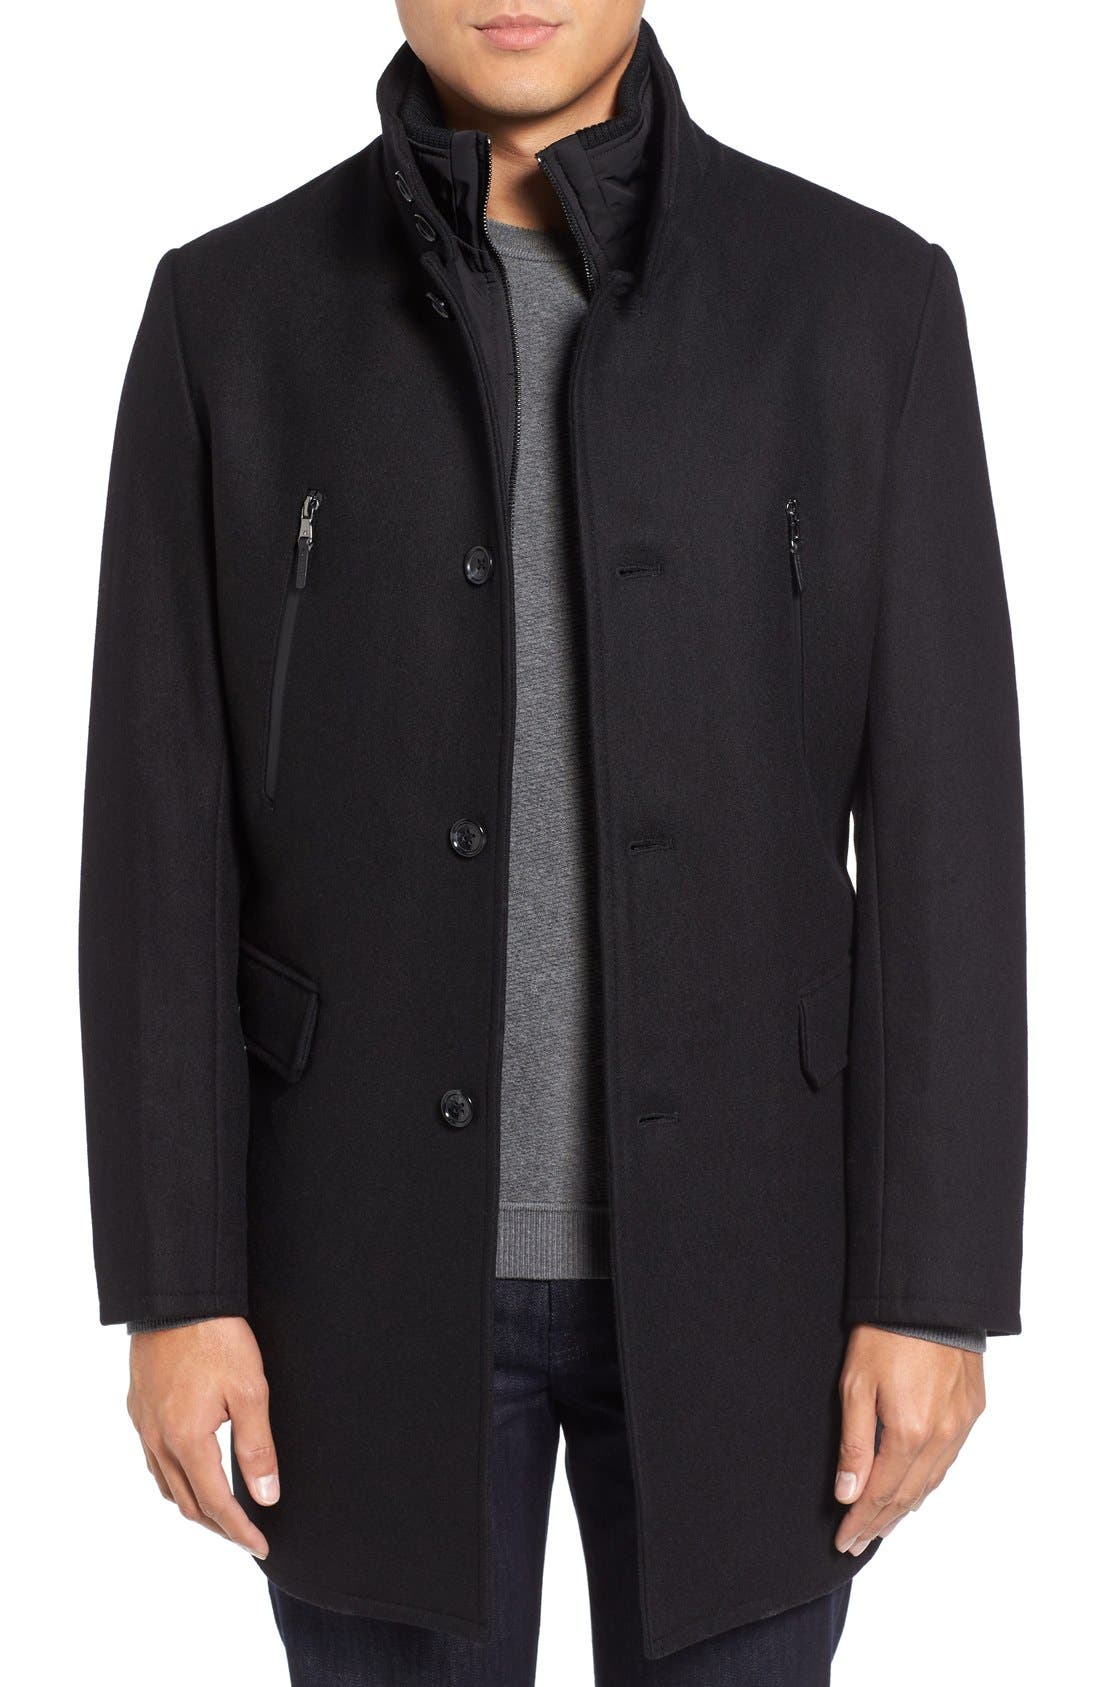 Main Image - Michael Kors Wool Blend Topcoat